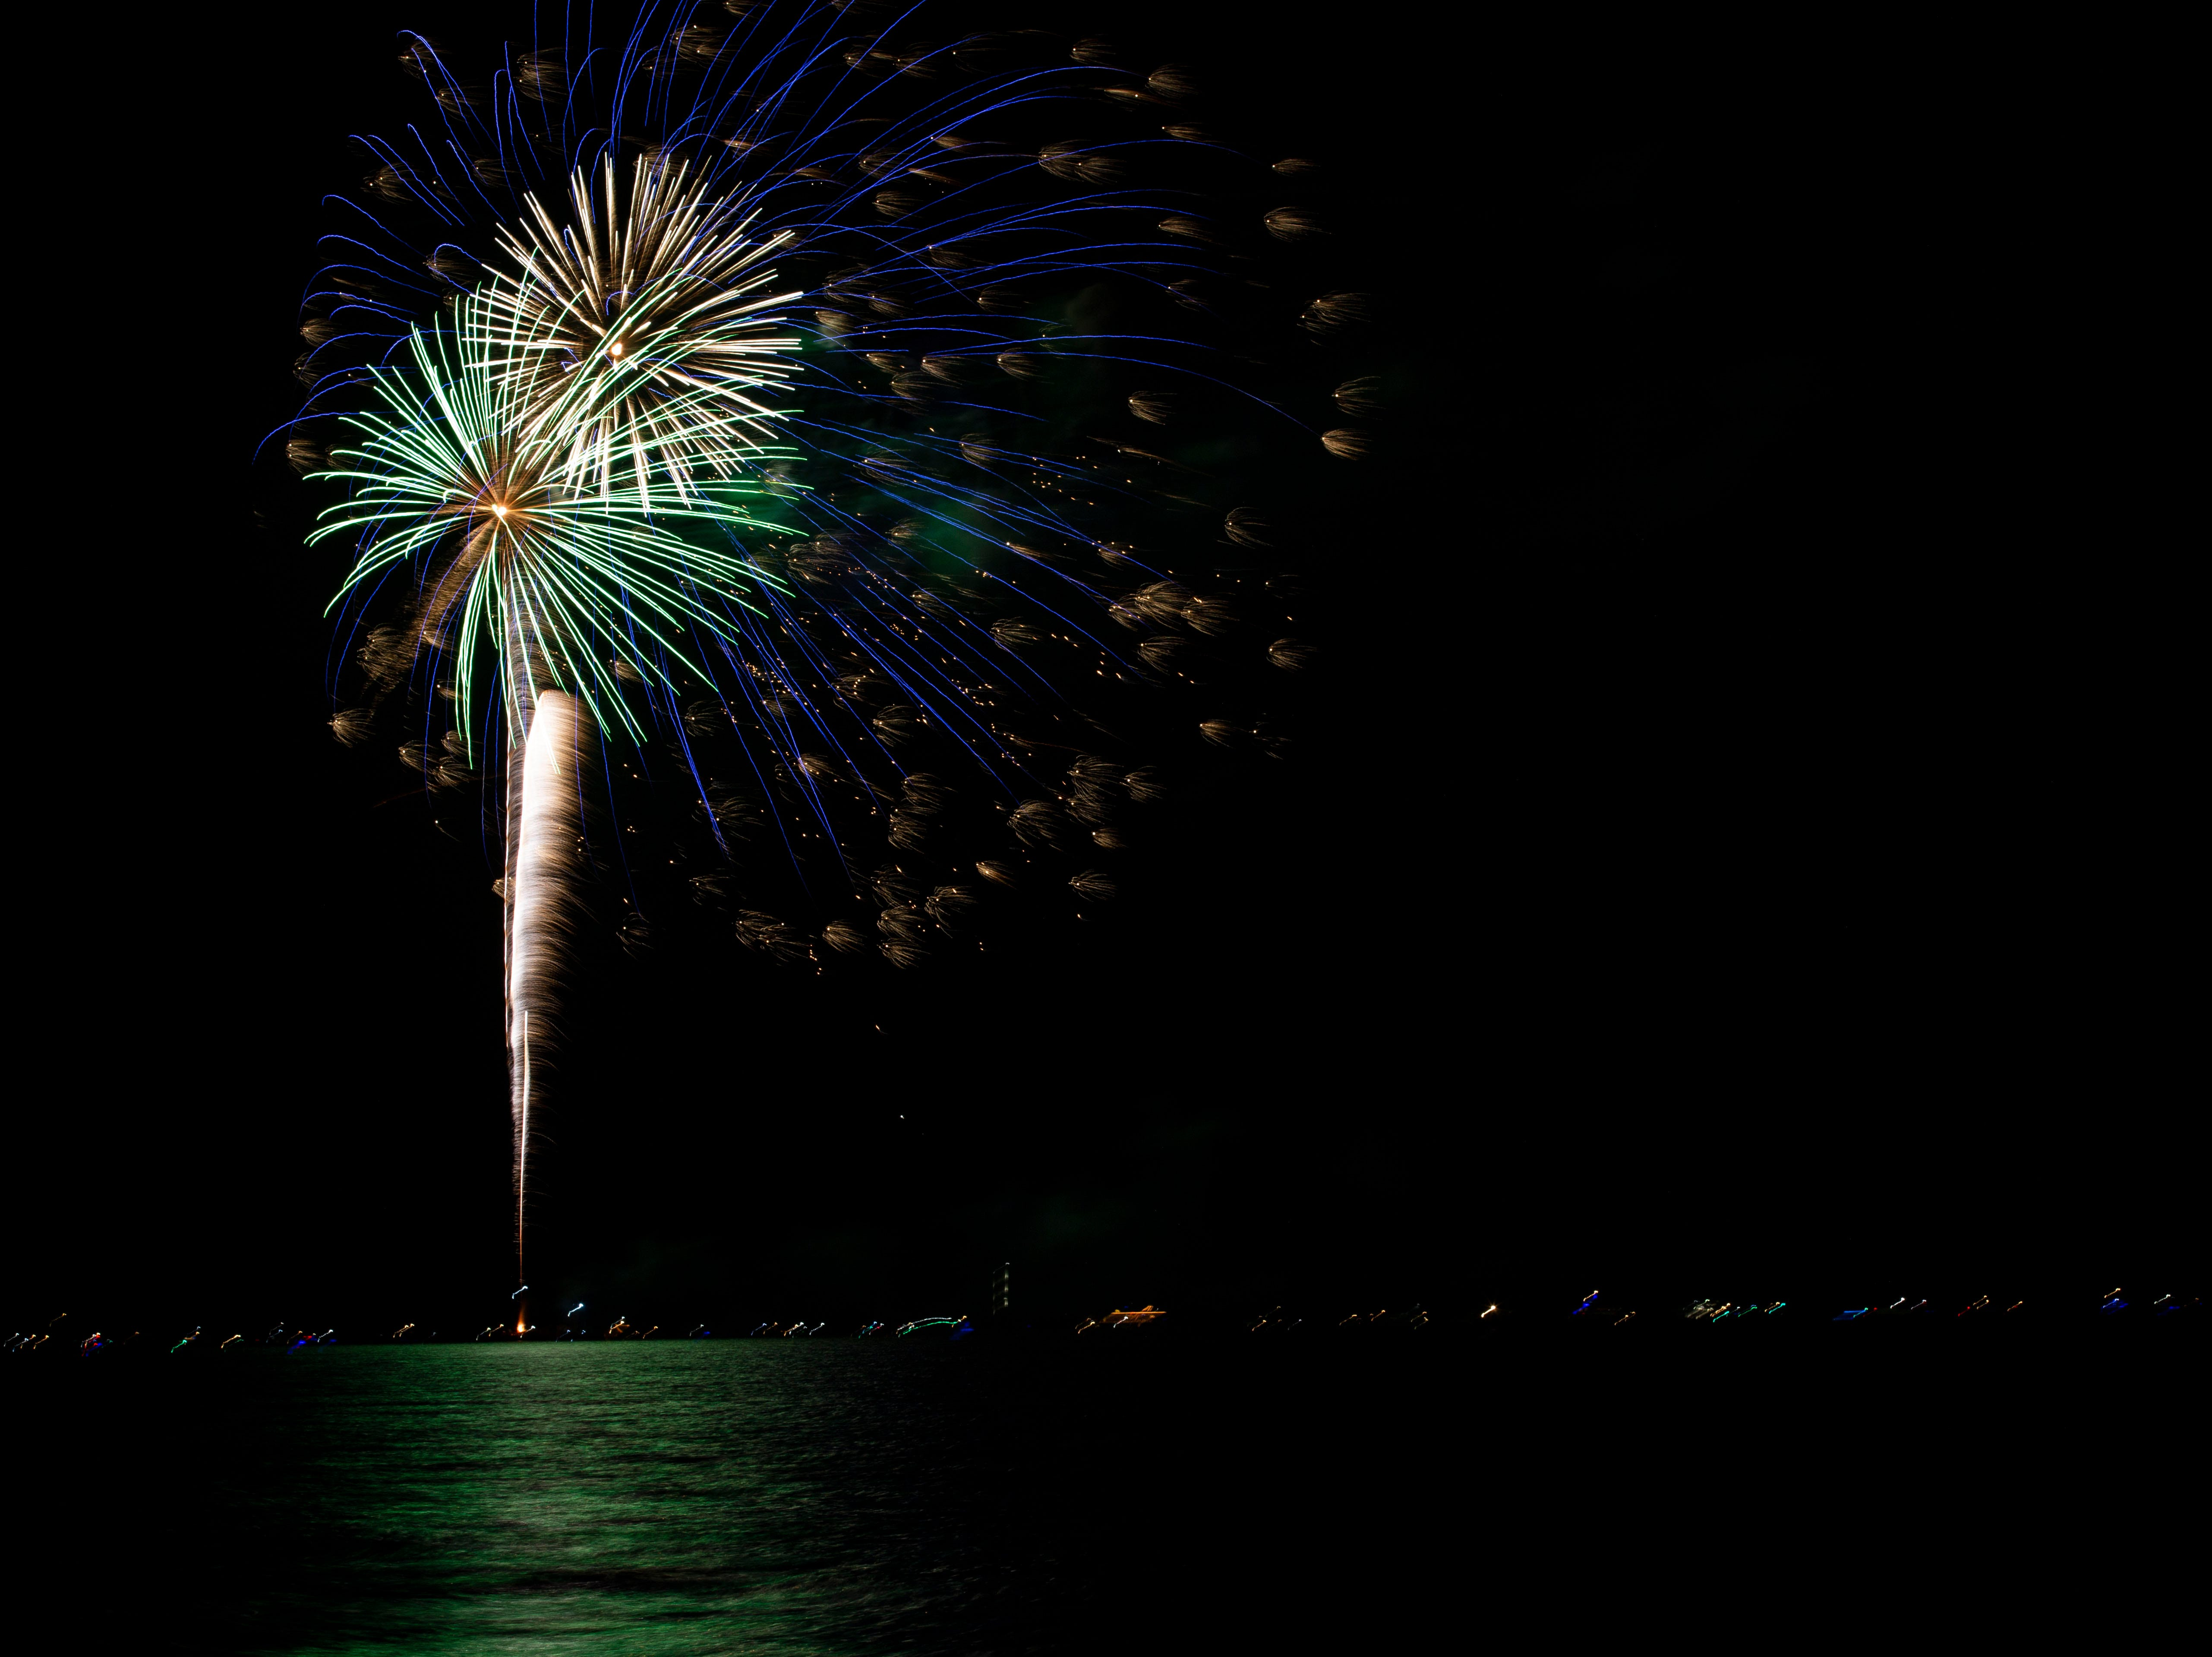 The City of Naples put on a half hour New Year's Eve firework display for thousands of people who gathered at the Naples Pier on Monday, Dec. 31, 2018.